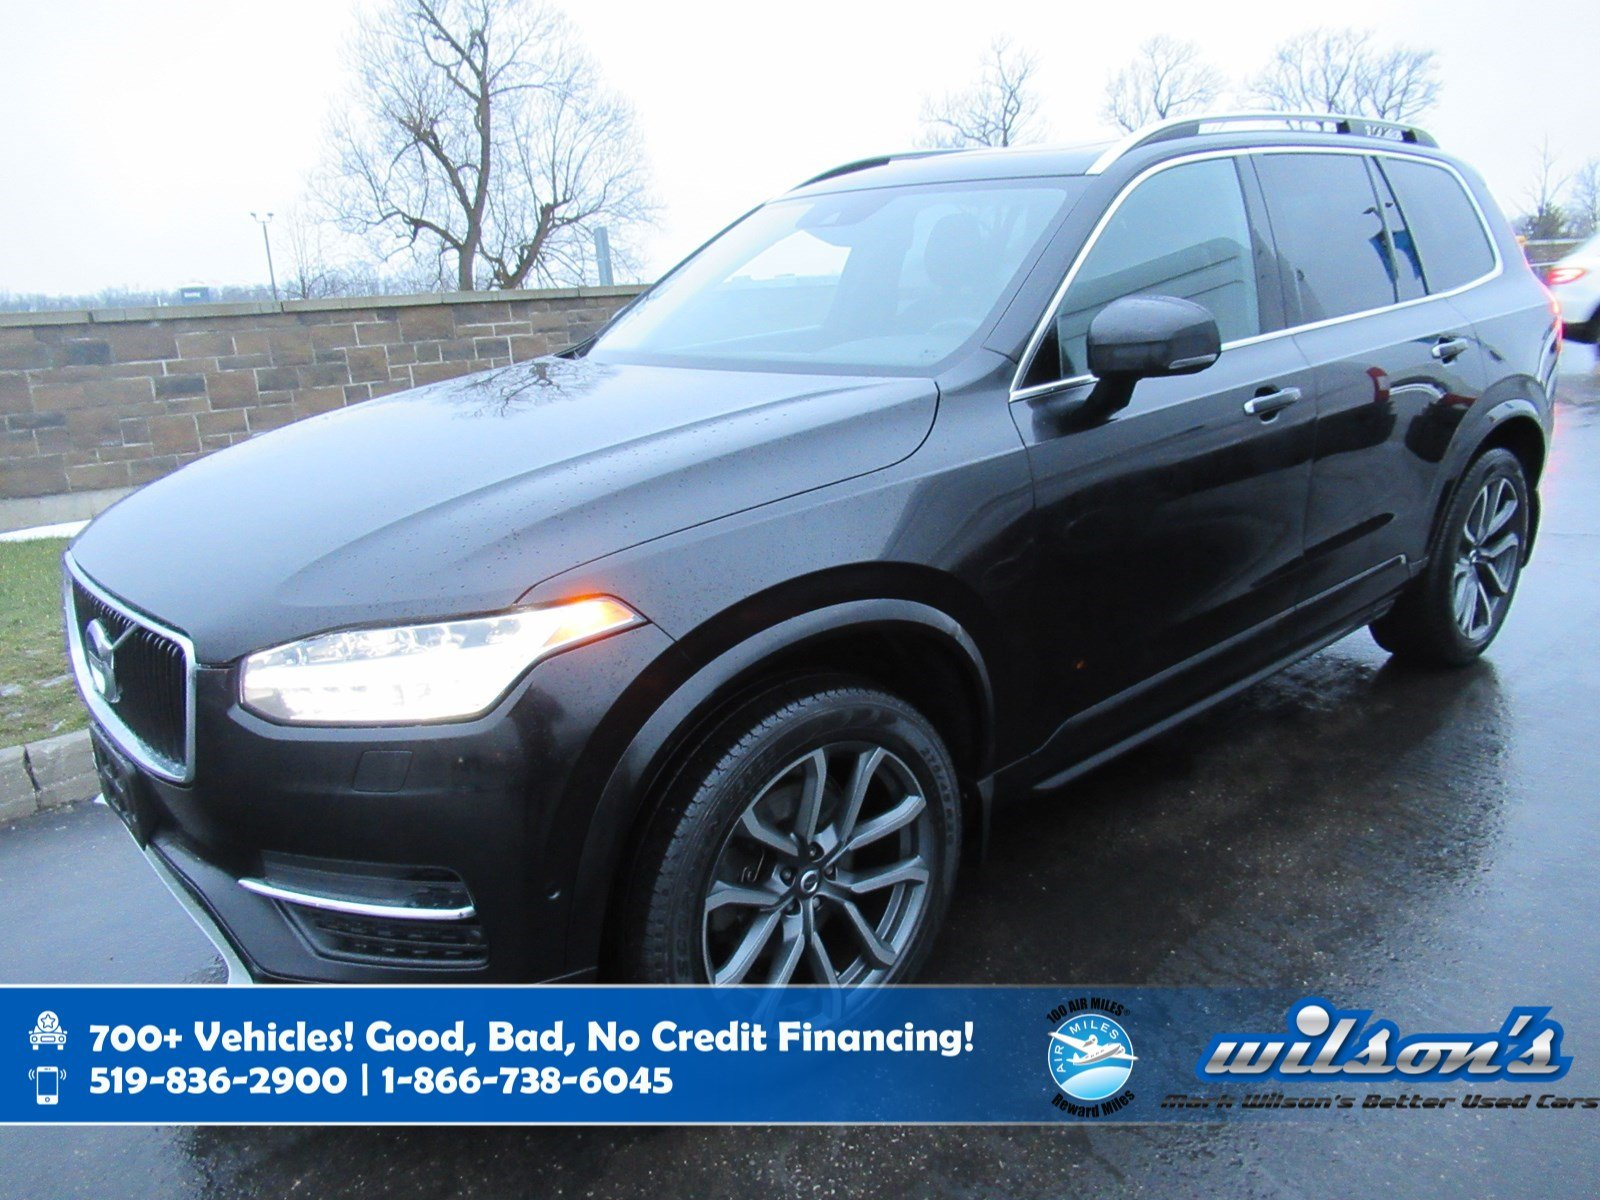 Certified Pre-Owned 2016 Volvo XC90 T6 Momentum AWD, Navigation, Leather, 3rd Row, Sunroof, Heated Seats, Rear Camera and more!